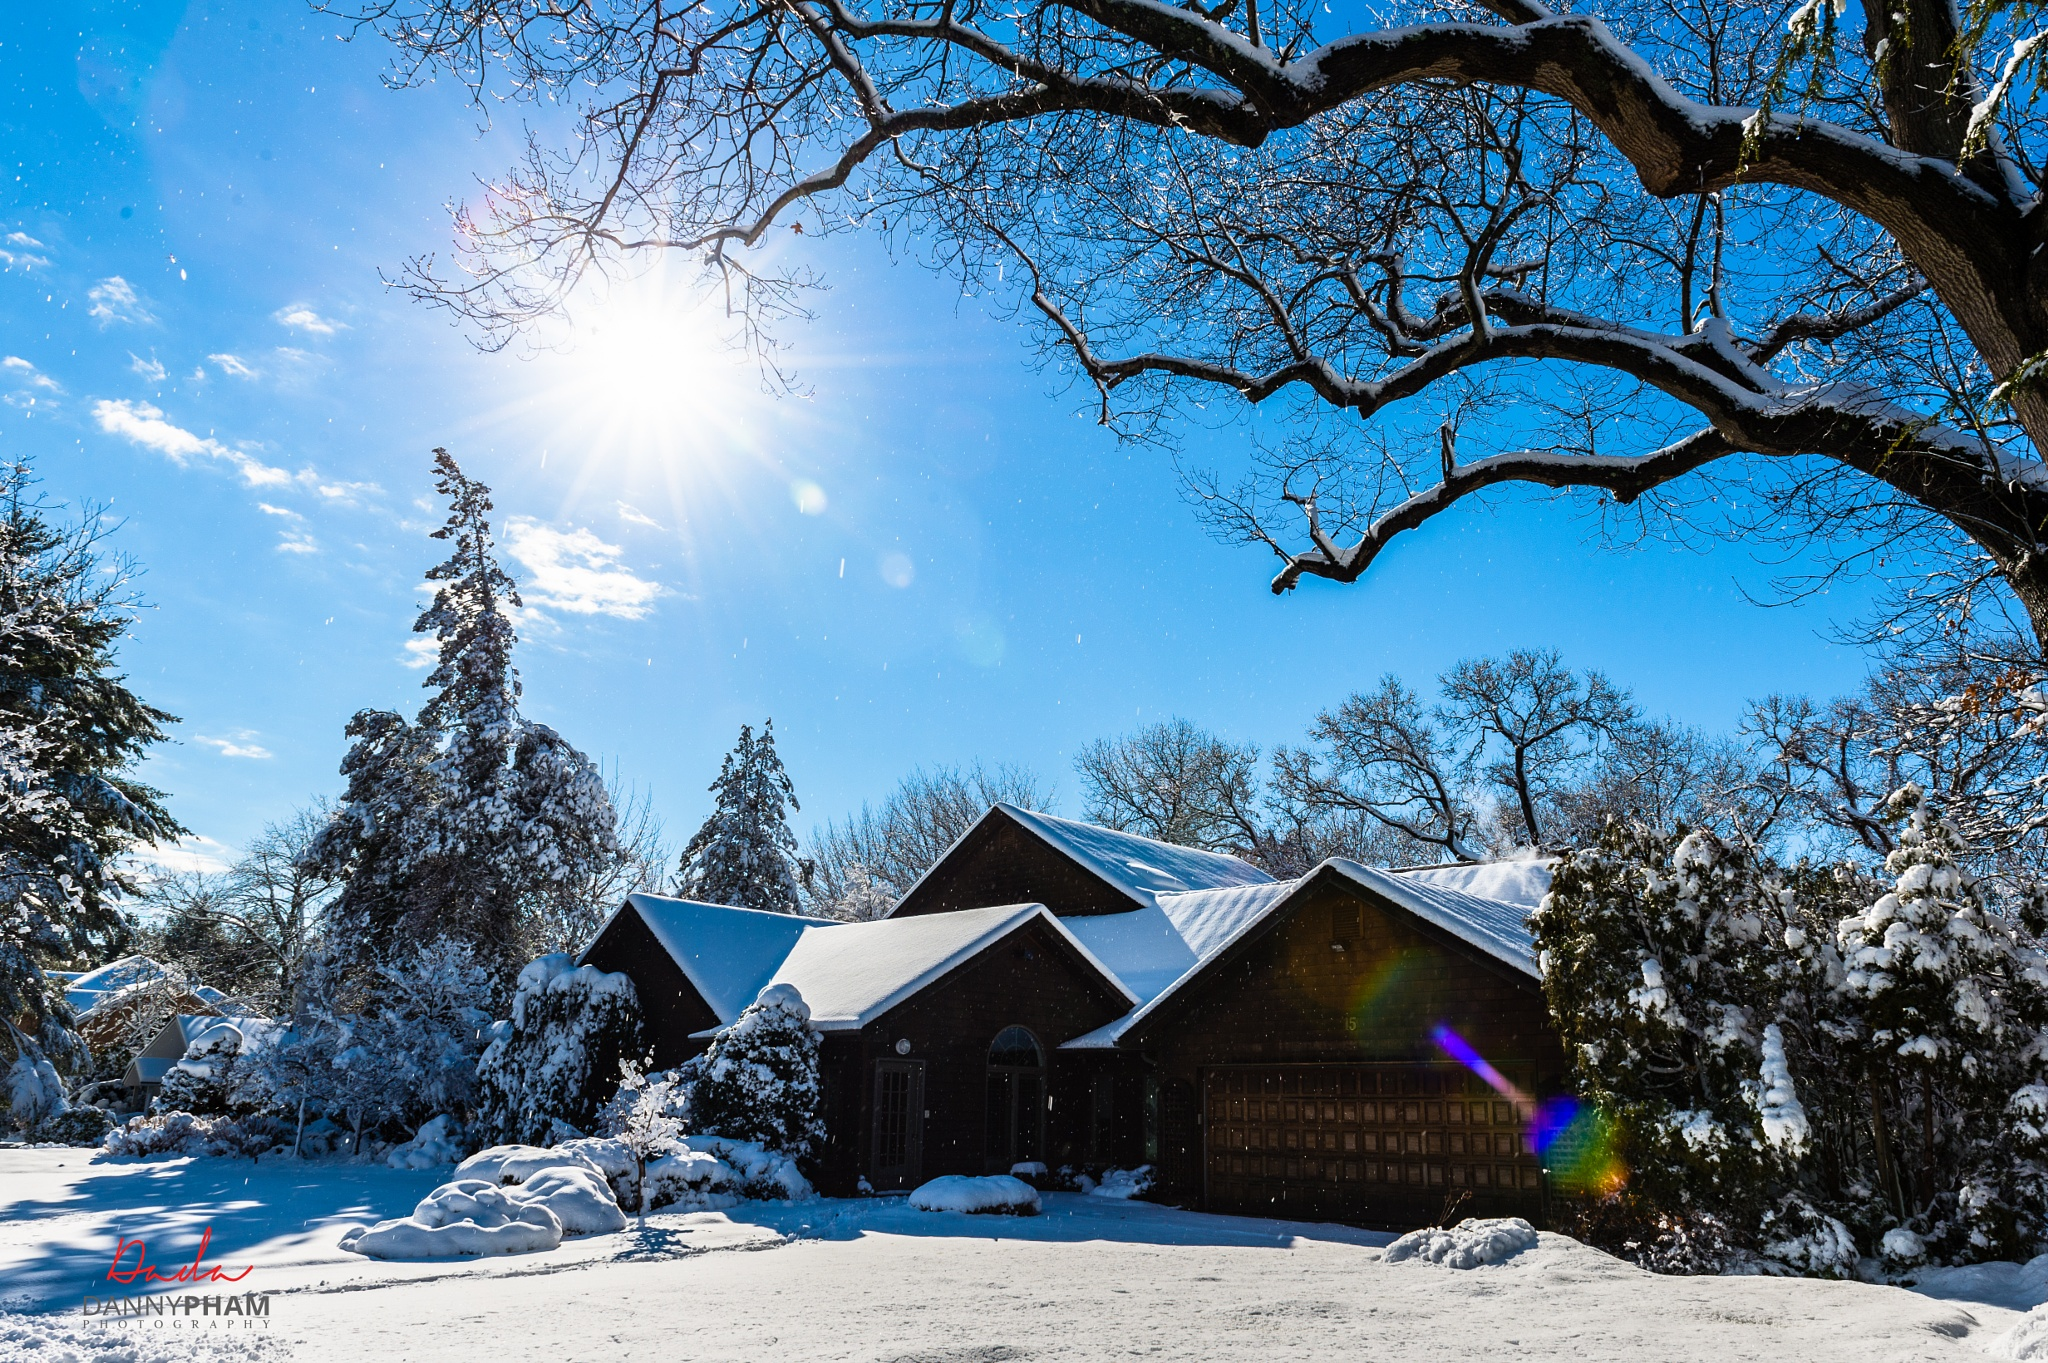 Postcard moment...  After a heavy & wet snow storm! by Danny Pham